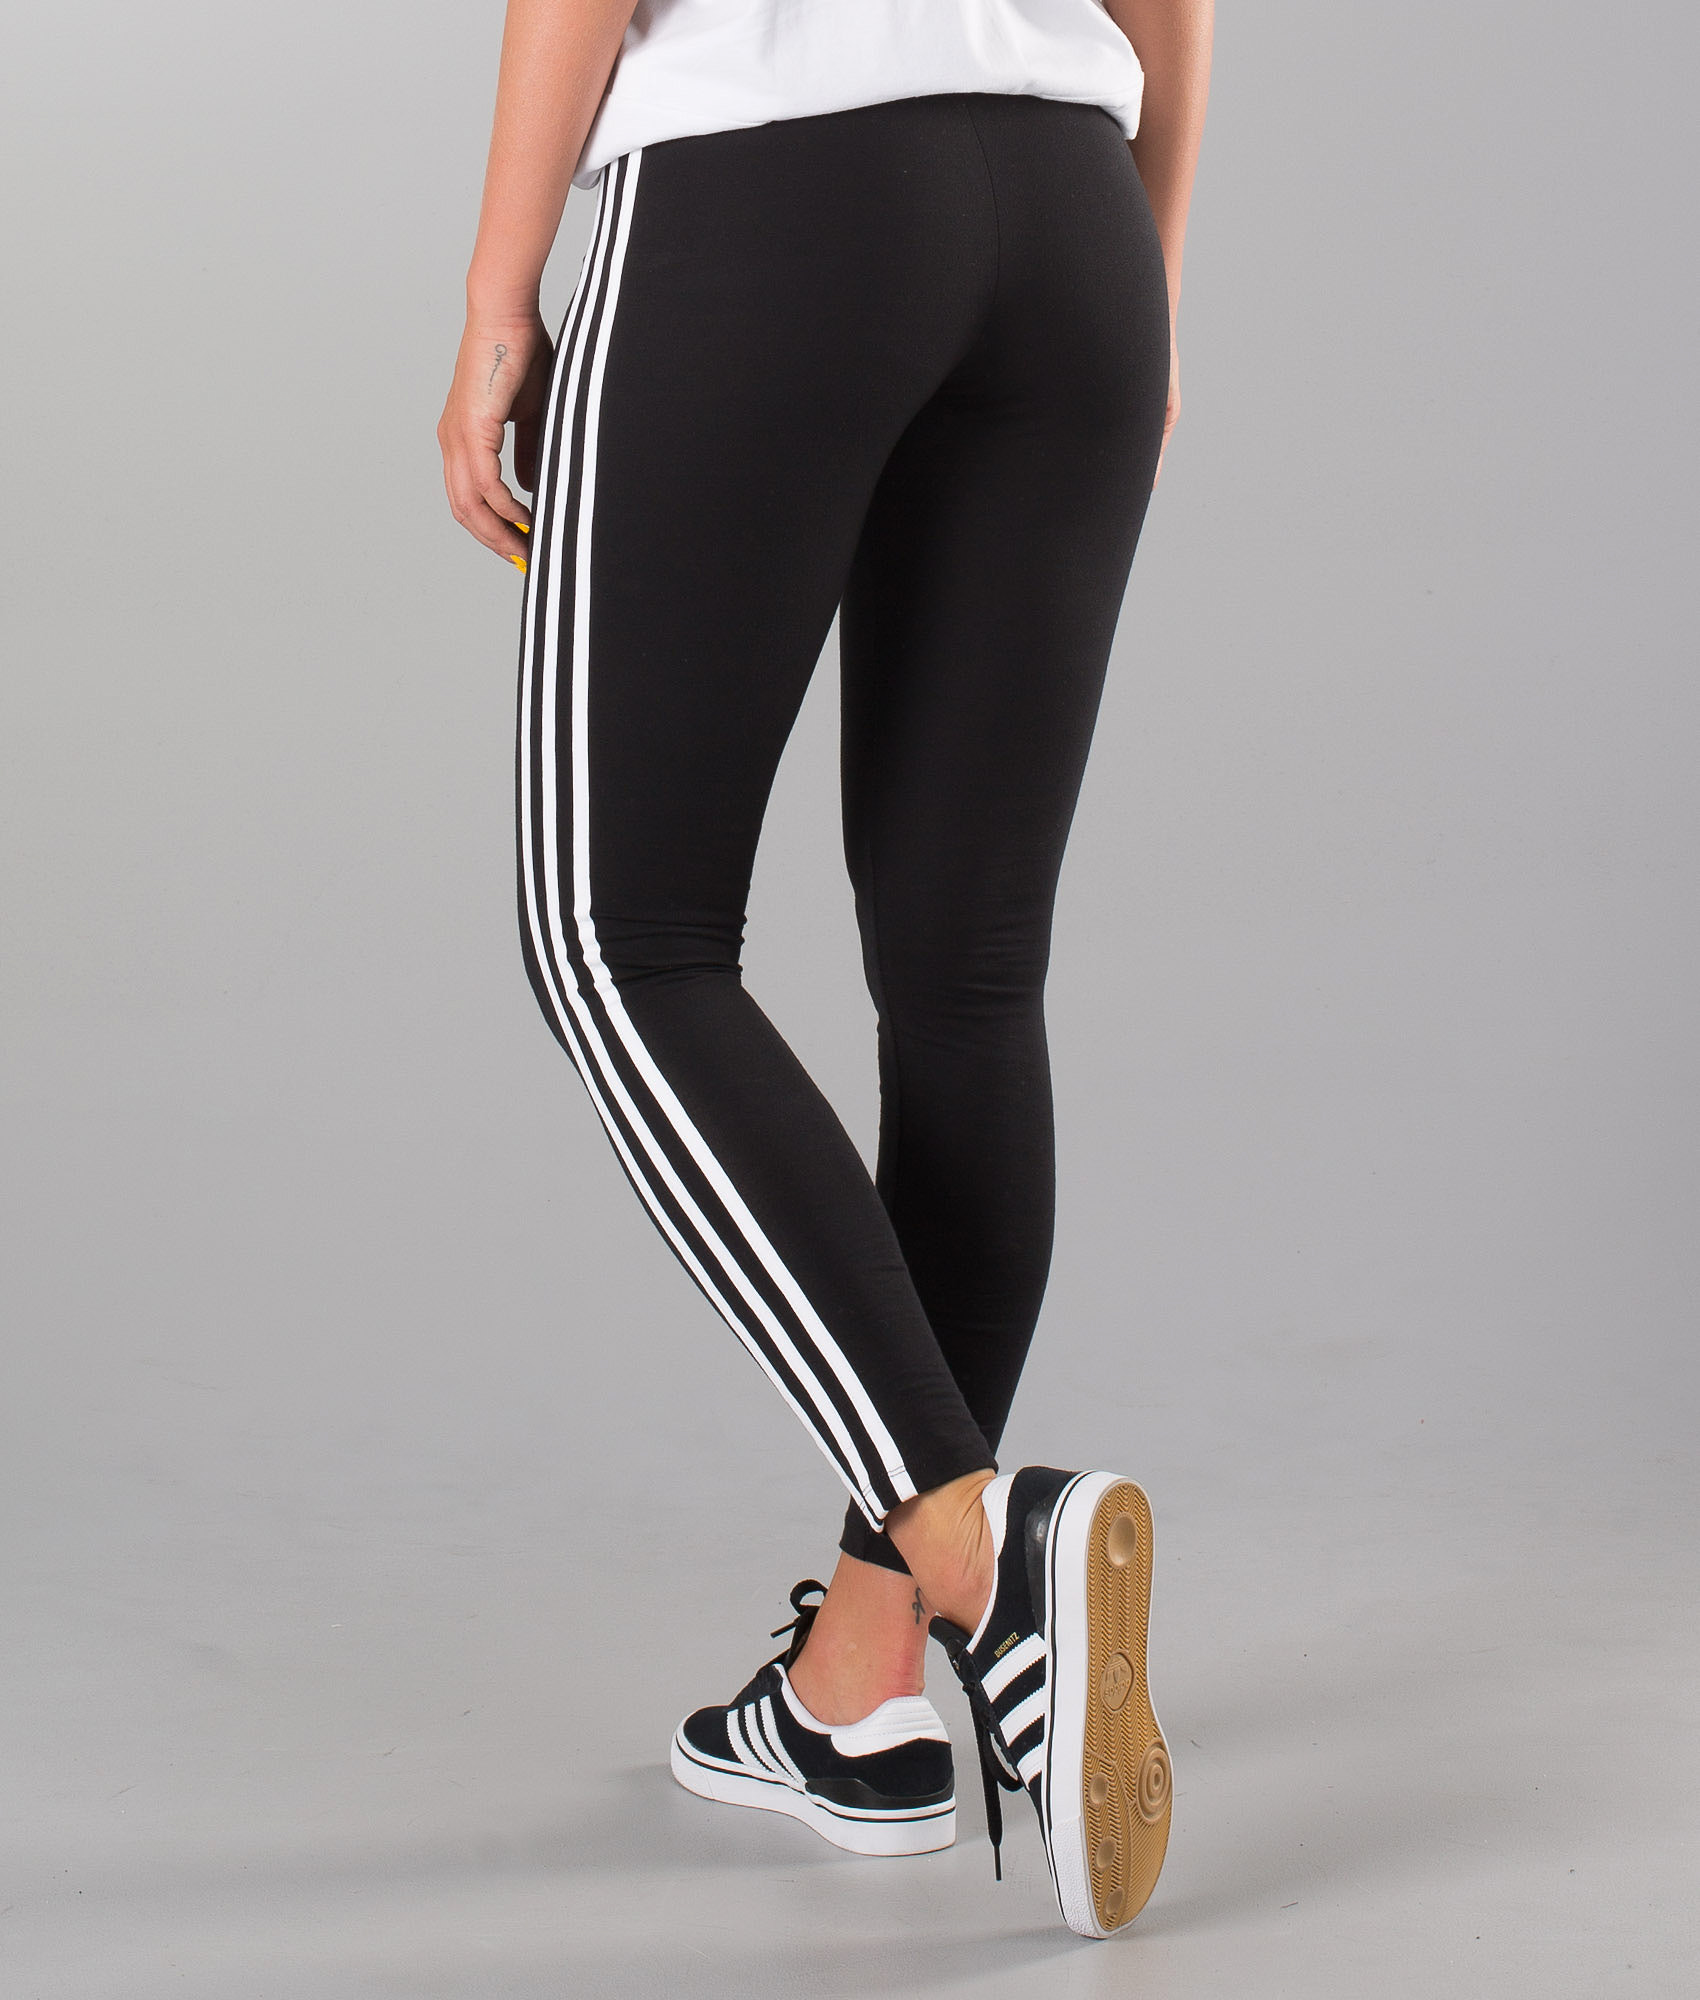 d9aeca4091e4 Adidas Originals 3-Stripes Leggings Black - Ridestore.com